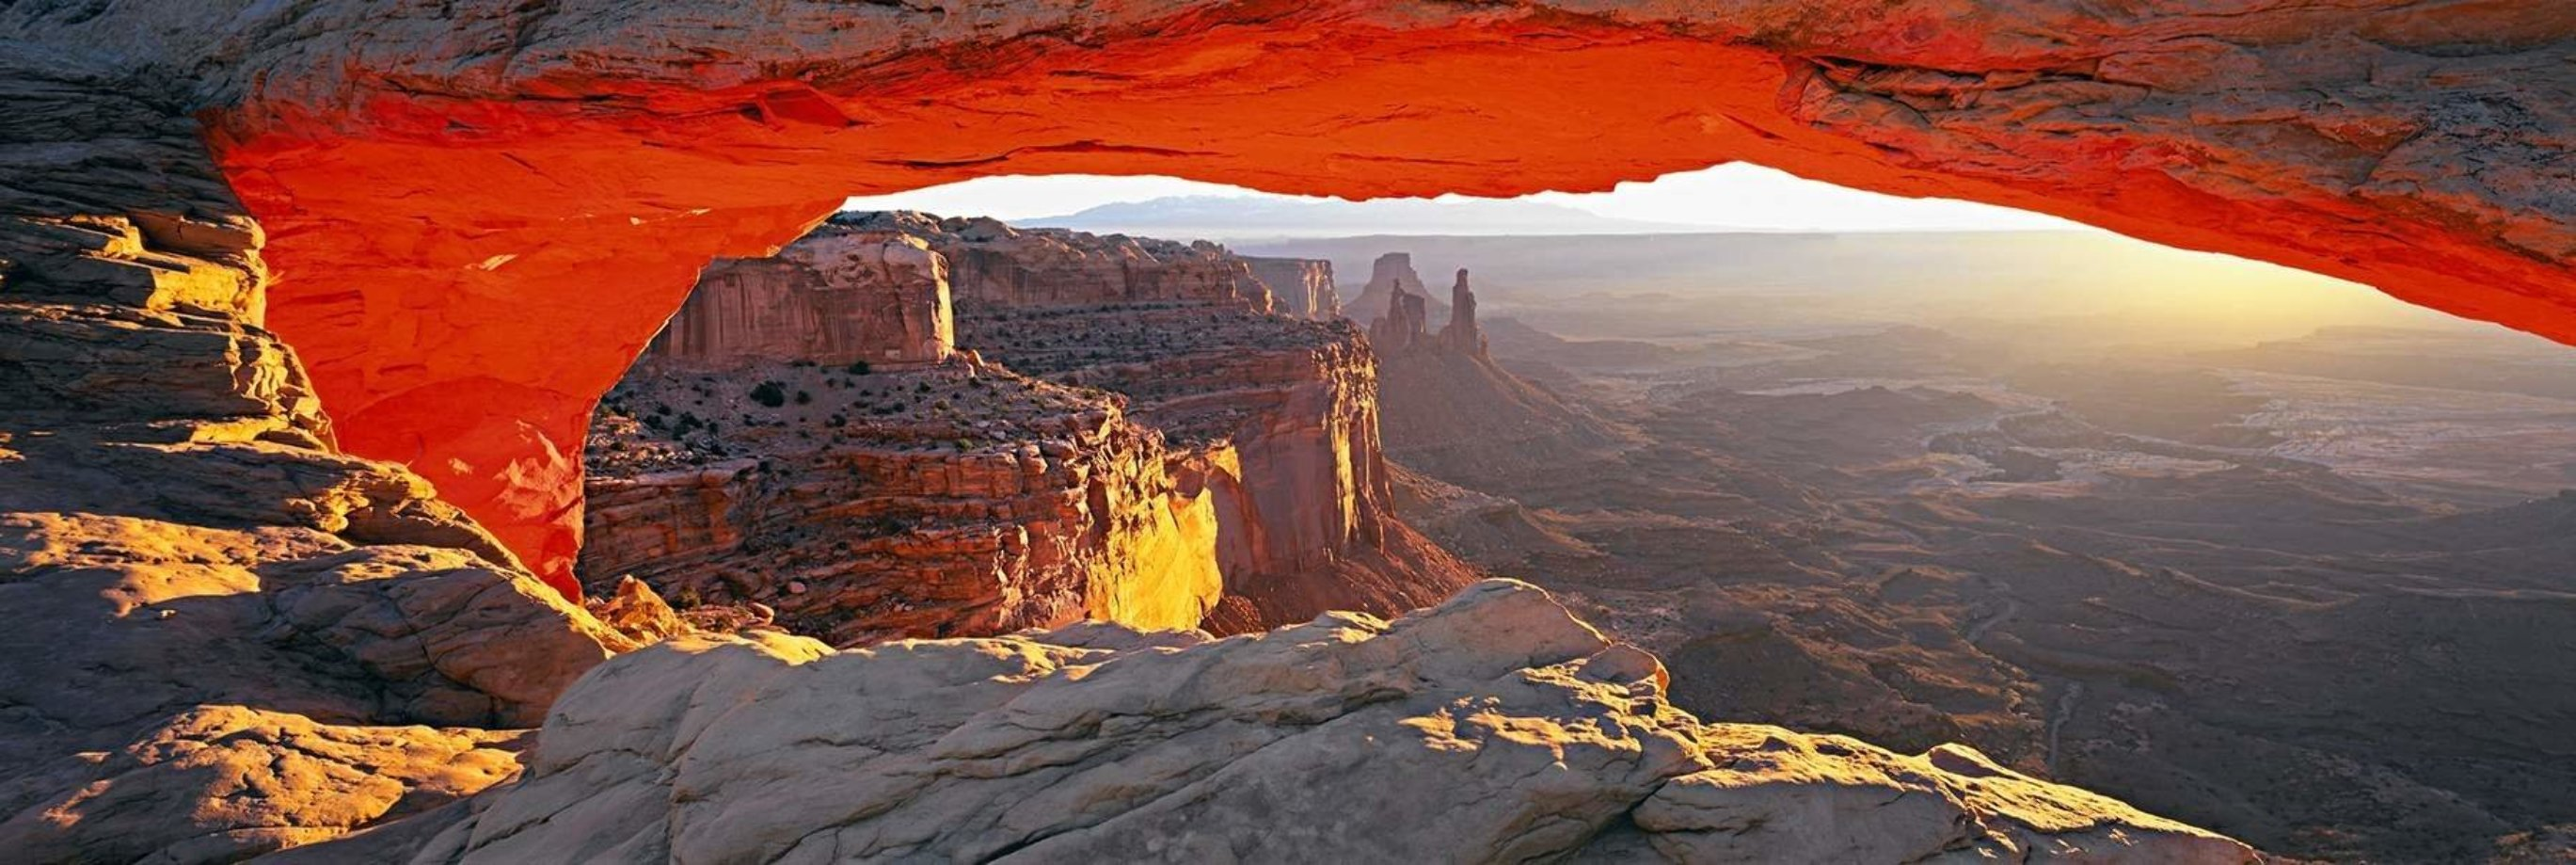 Echoes of Silence (Canyonlands National Park, Utah) 2006 1.5M Huge! Panorama by Peter Lik